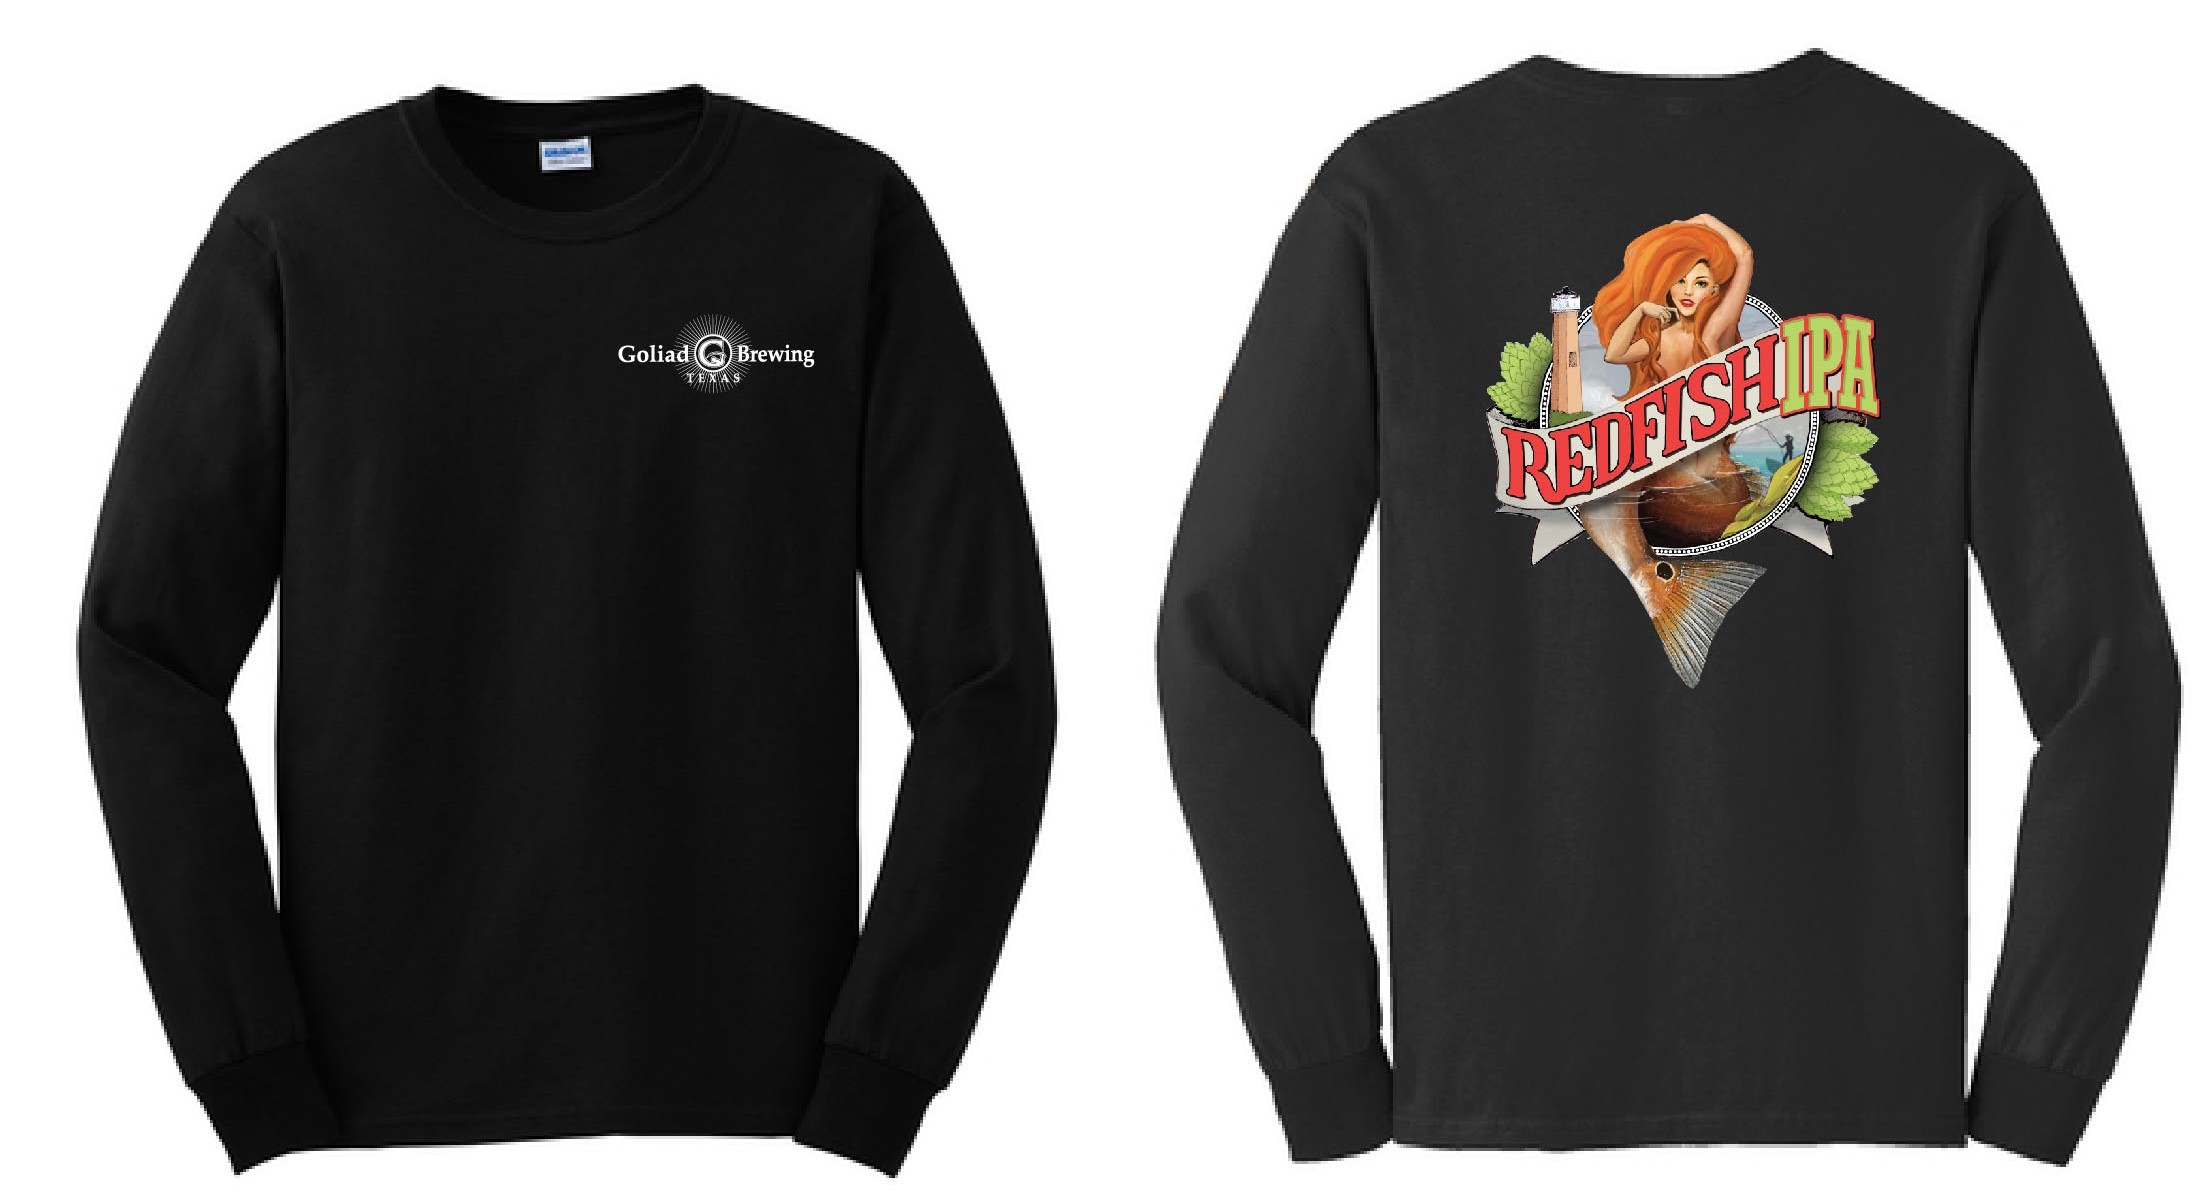 Redfish IPA L/S Black